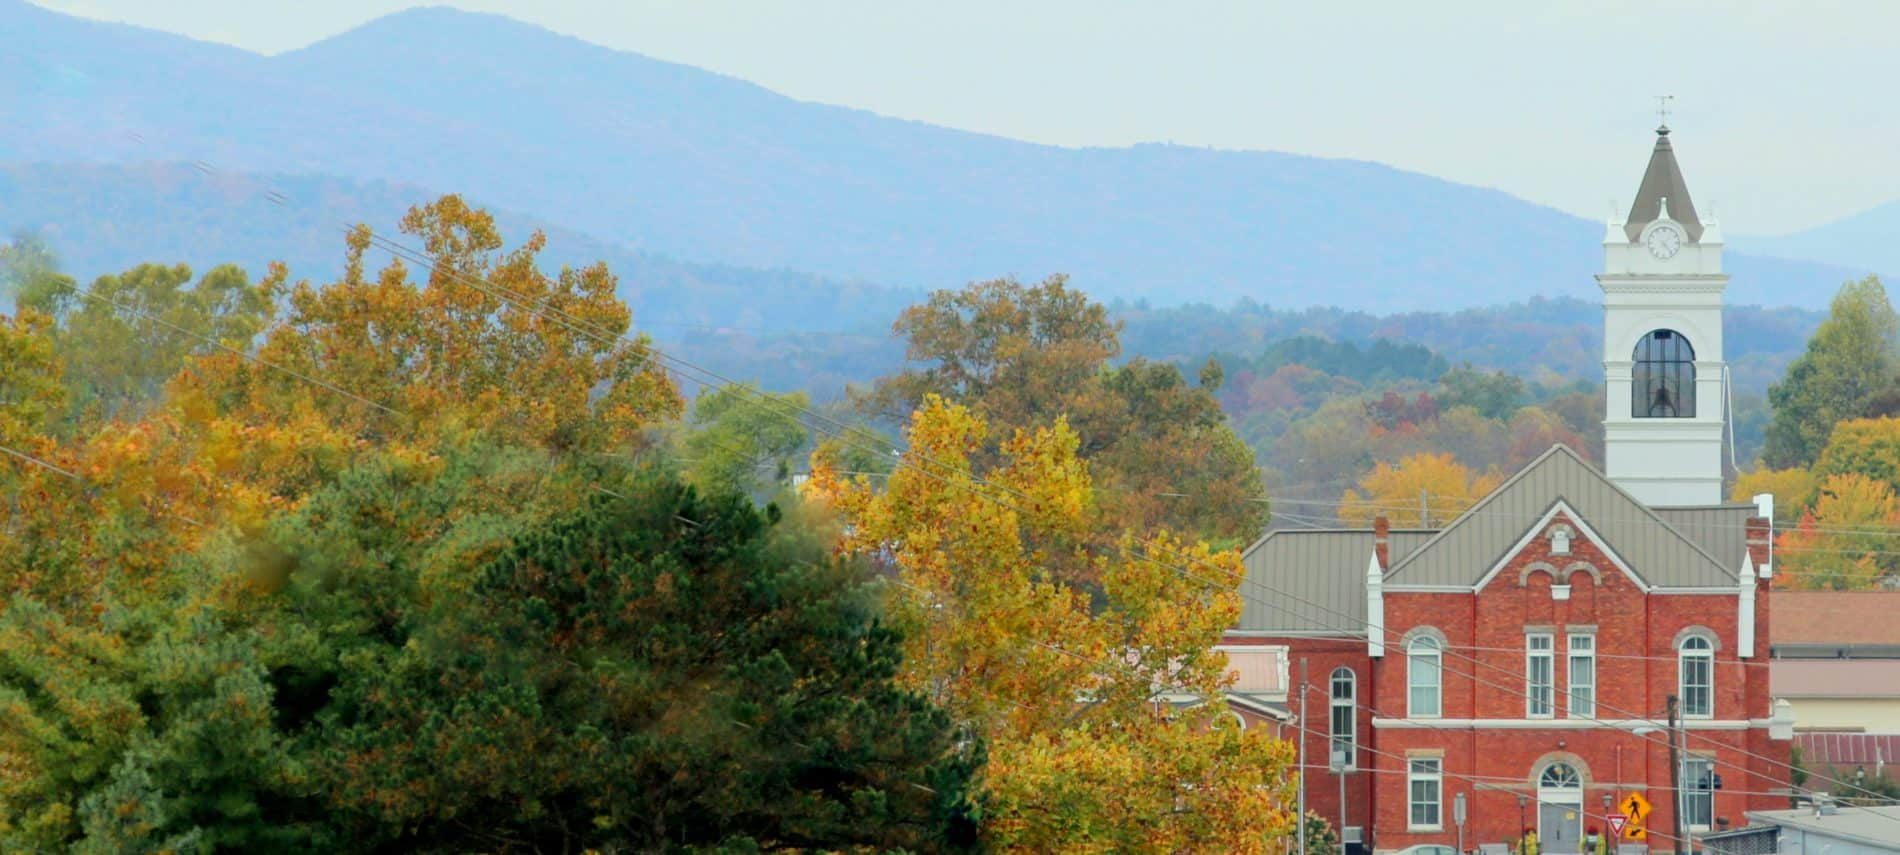 Pretty postcard scene of Blairsville downtown in autumn.